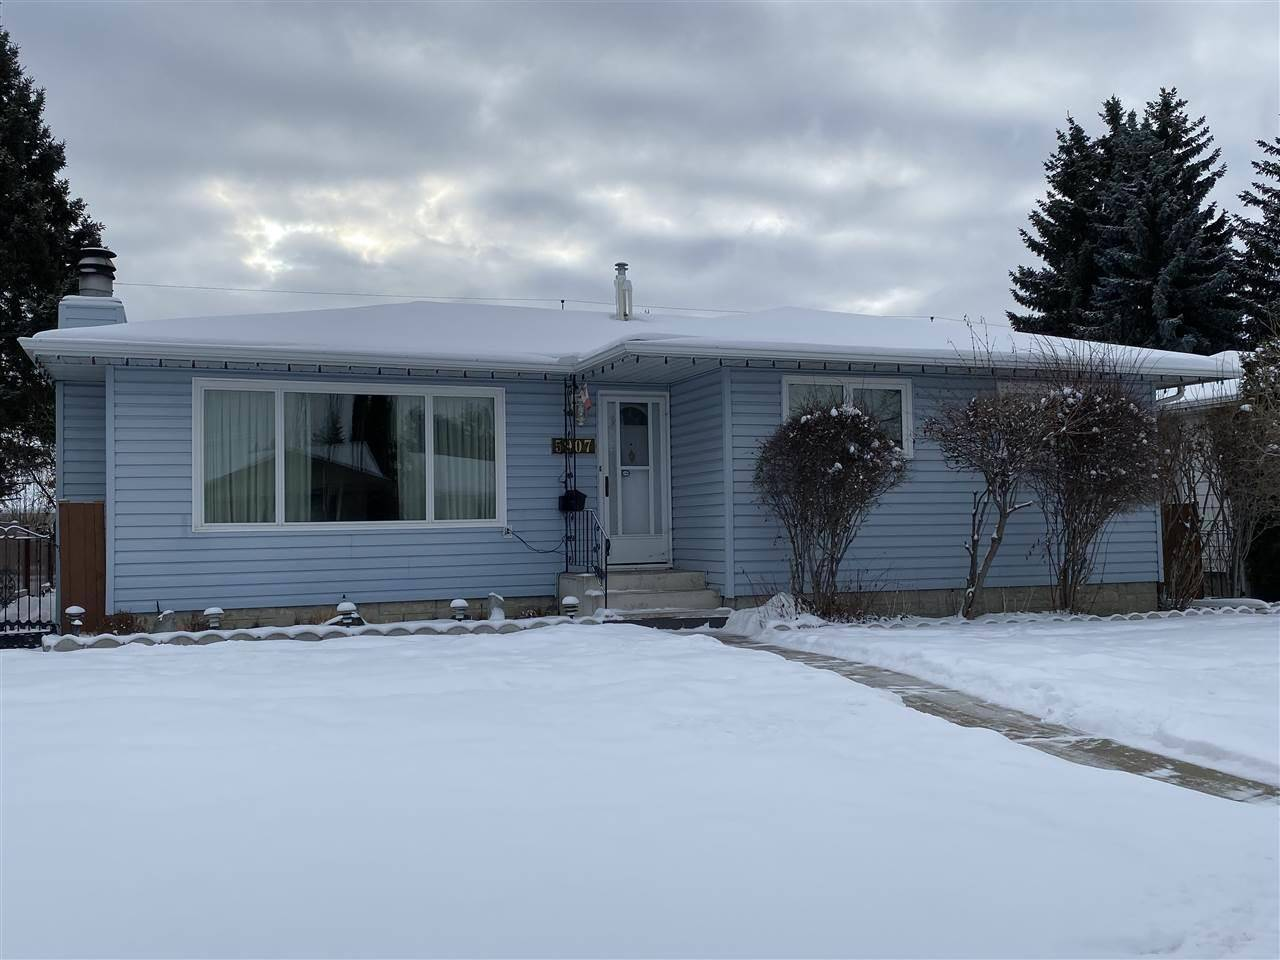 House for sale at 5907 94a Ave Nw Edmonton Alberta - MLS: E4182241